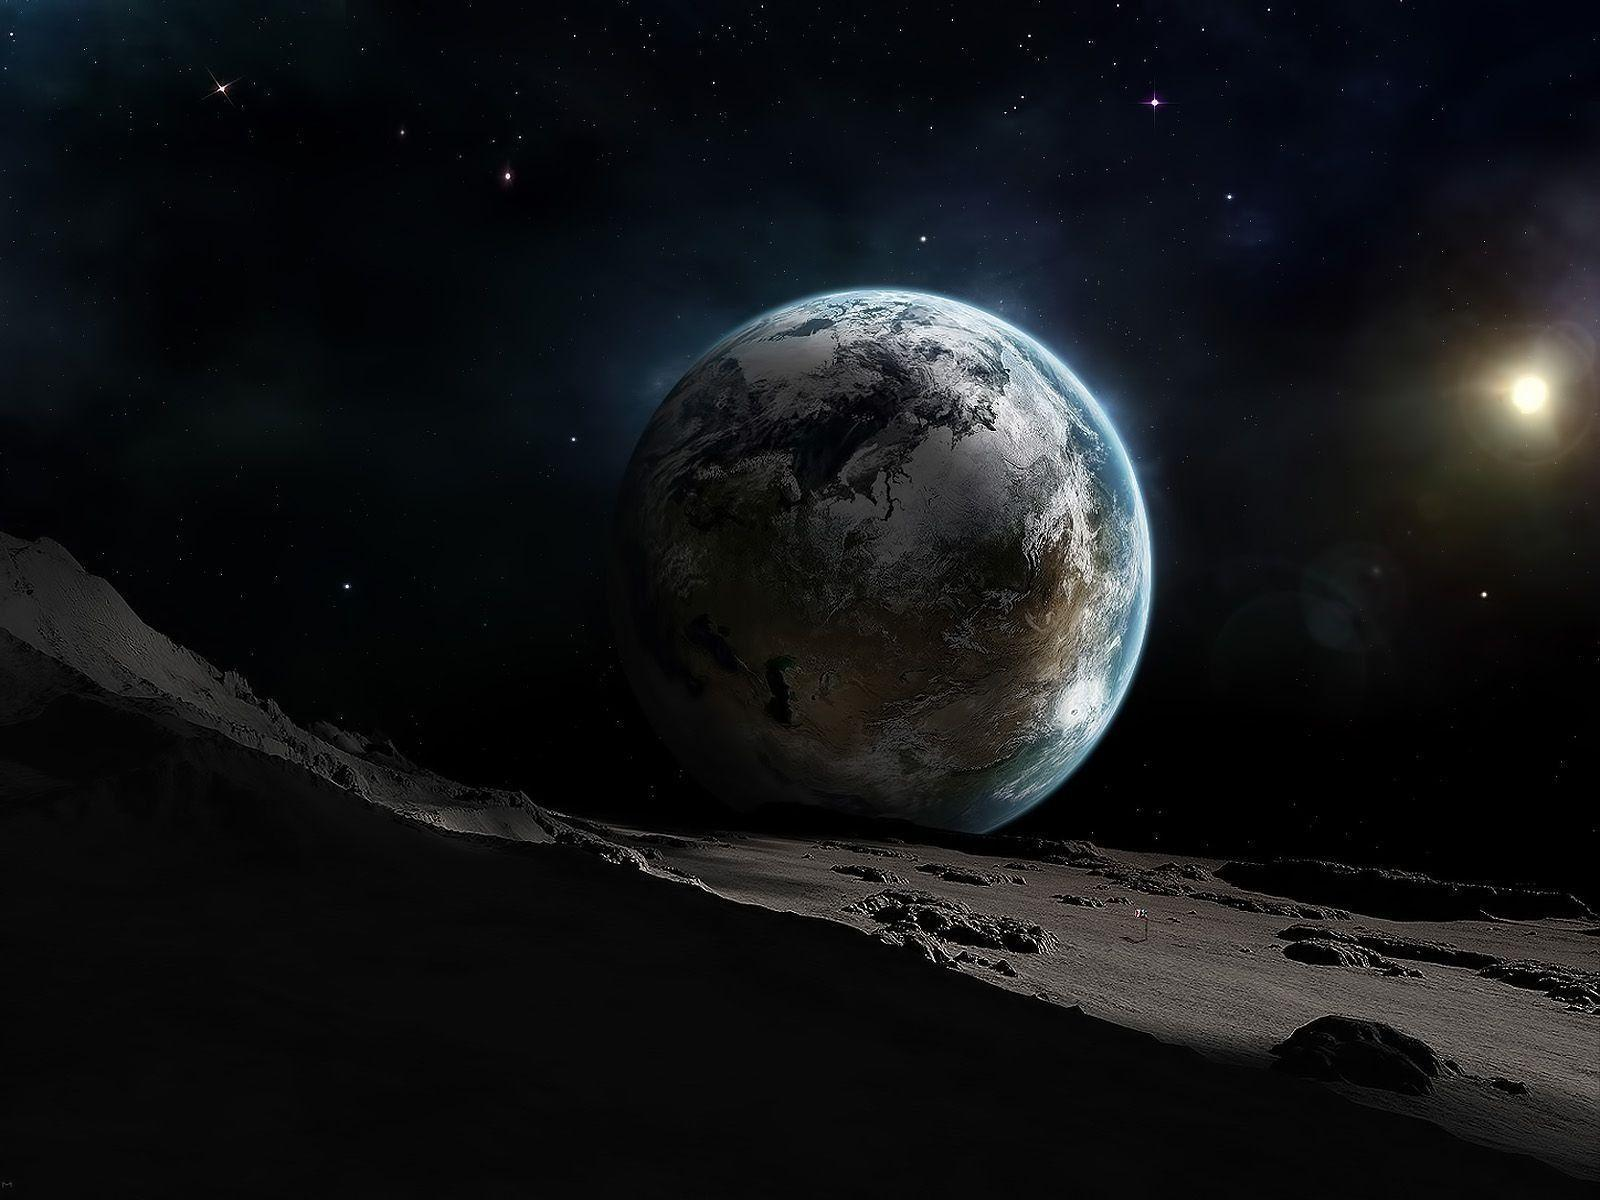 nasa wallpapers nasa wallpapers nasa wallpaper nasa pictures nasa ...